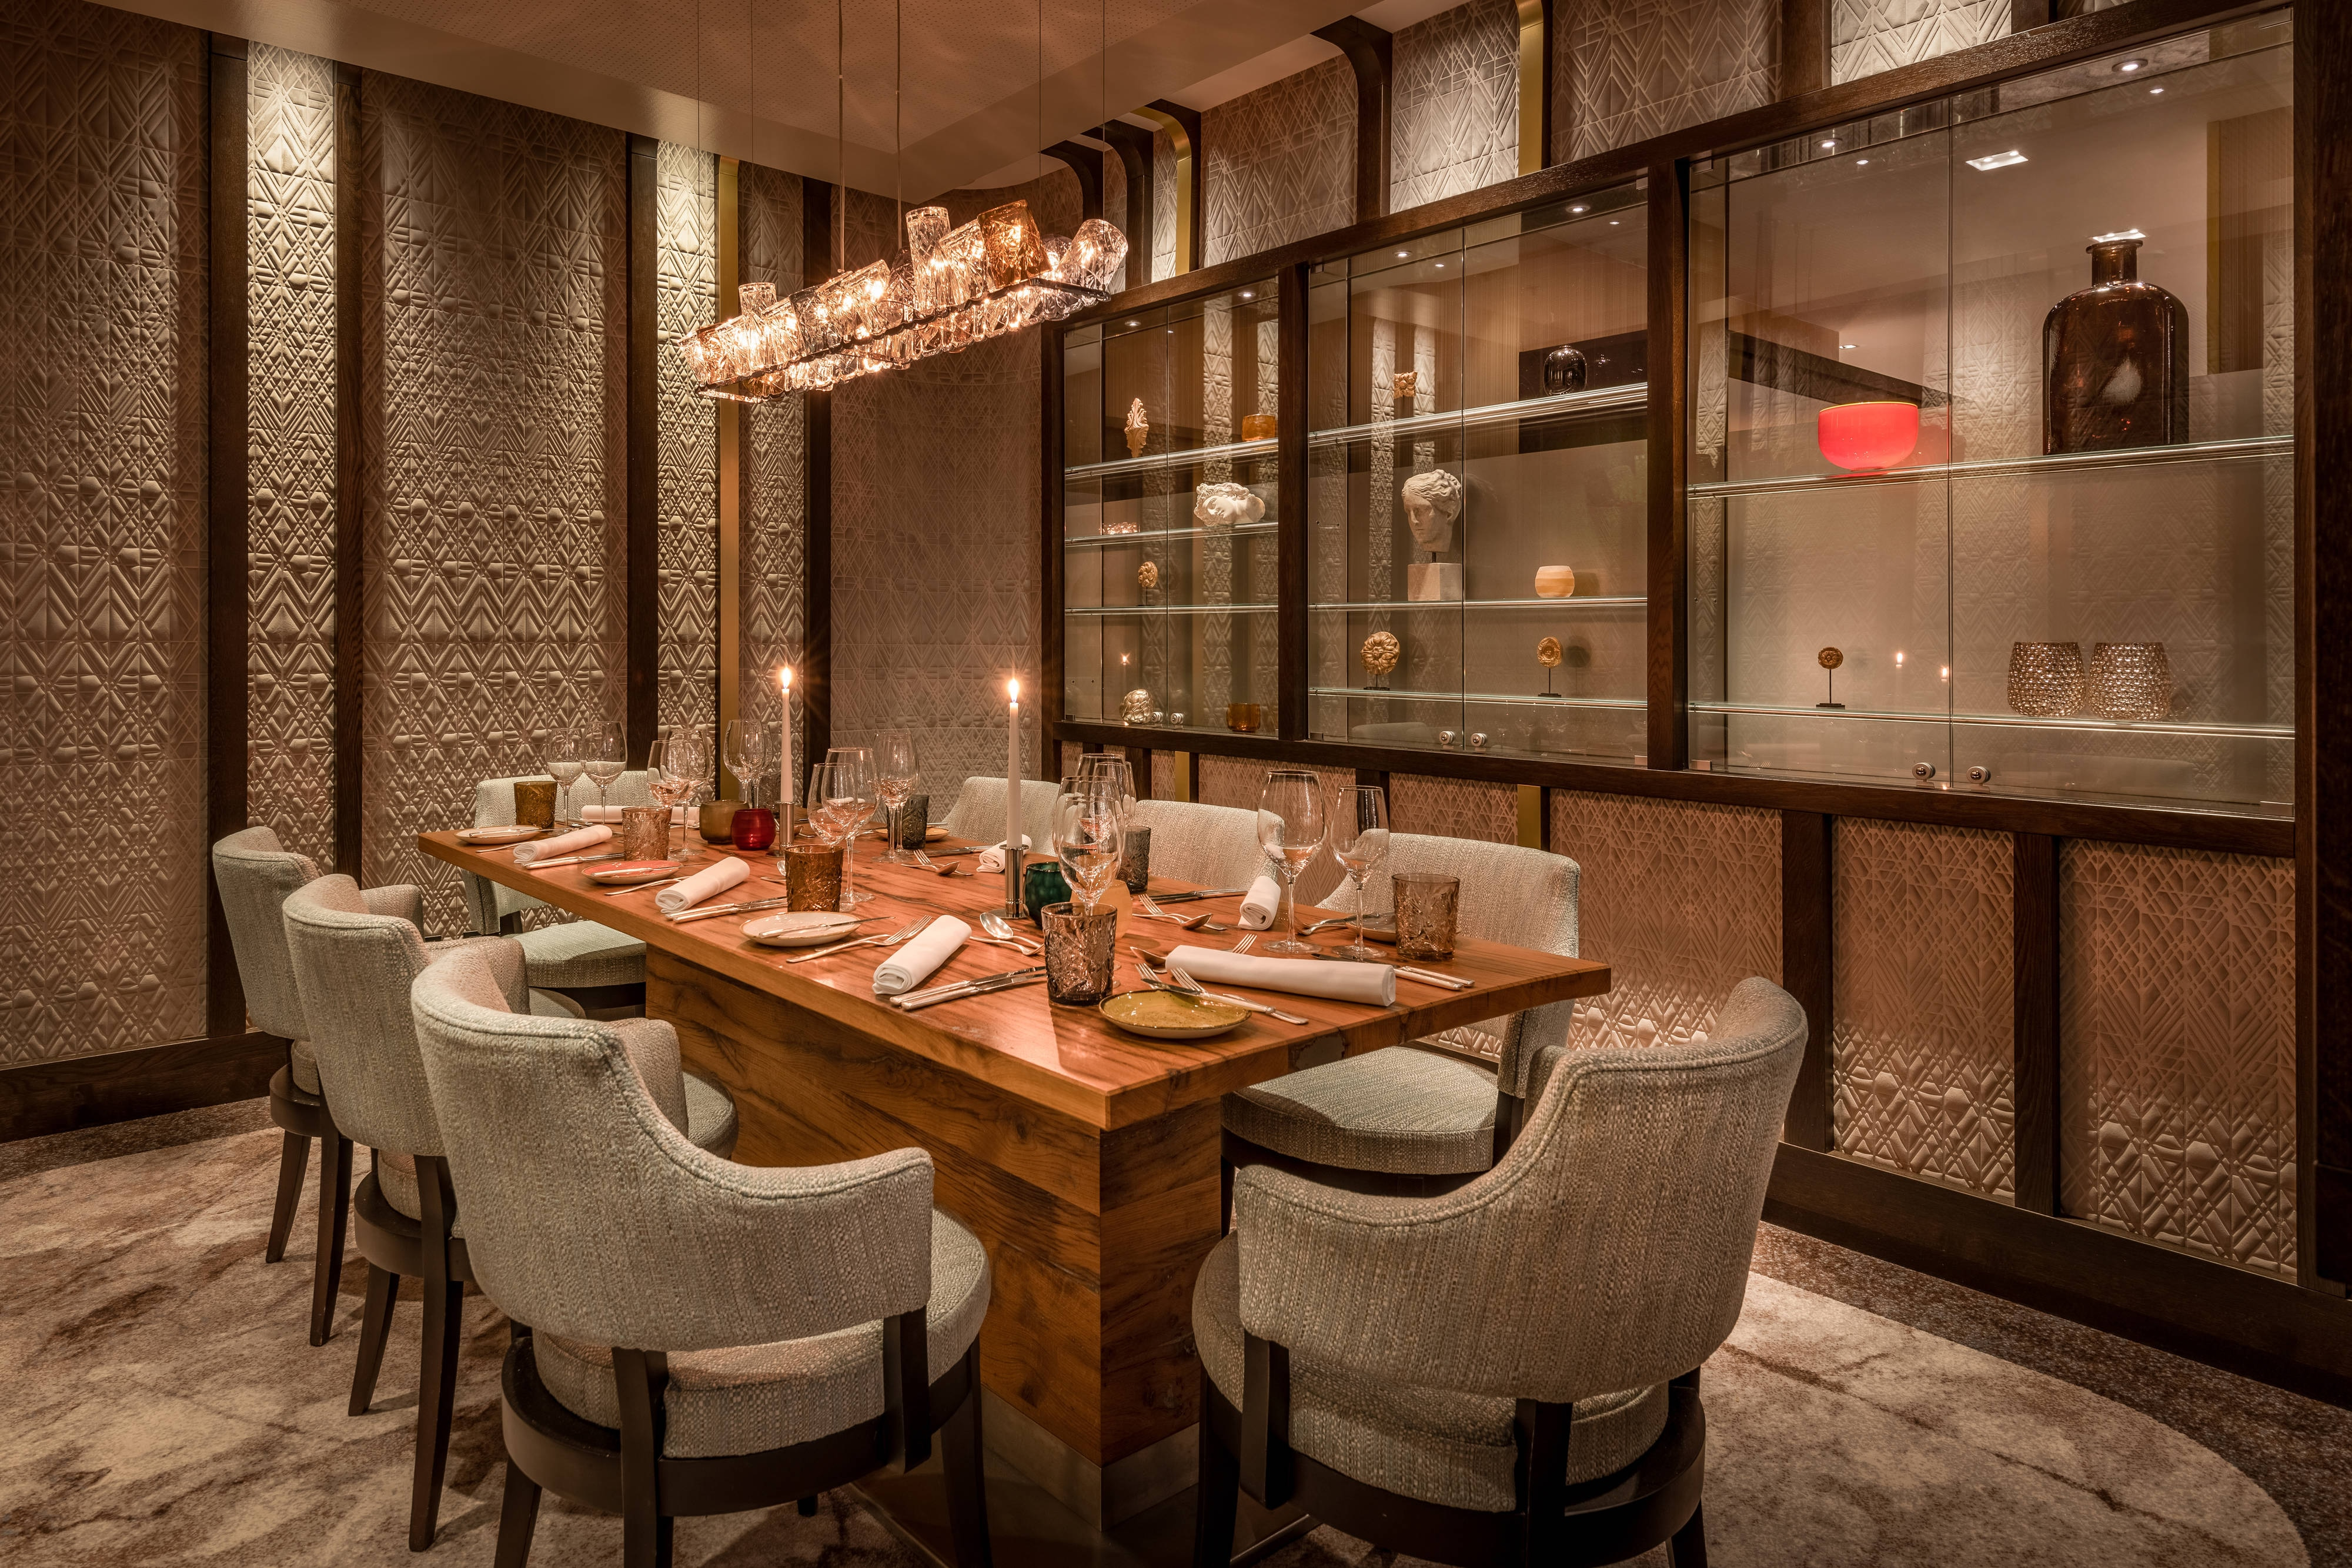 Parkring Restaurant - Private Dining Room